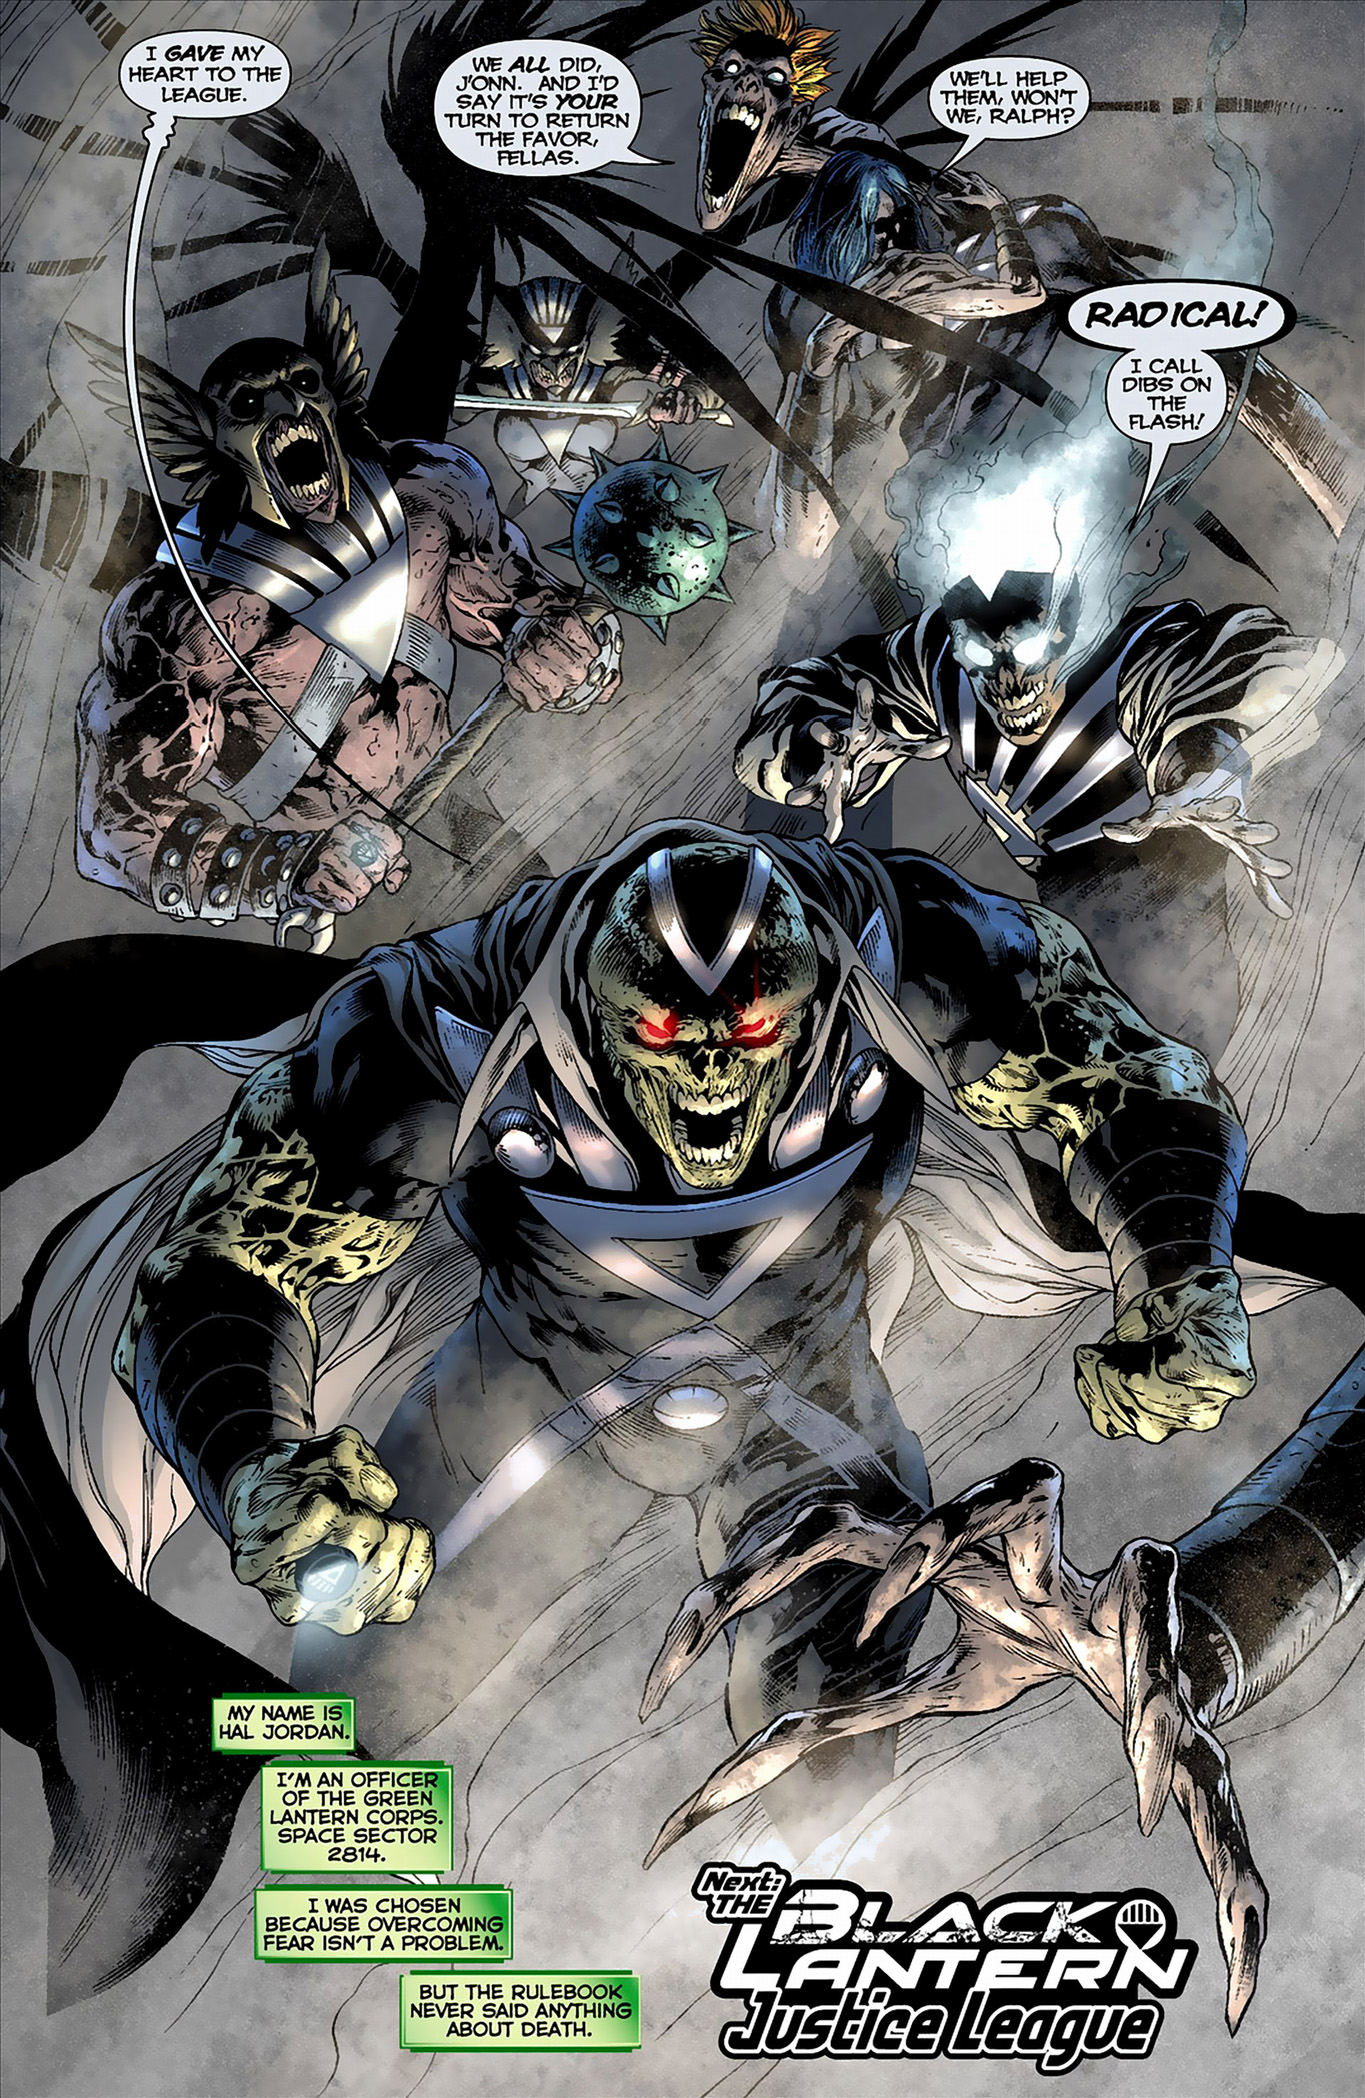 justice league members turned black lanterns